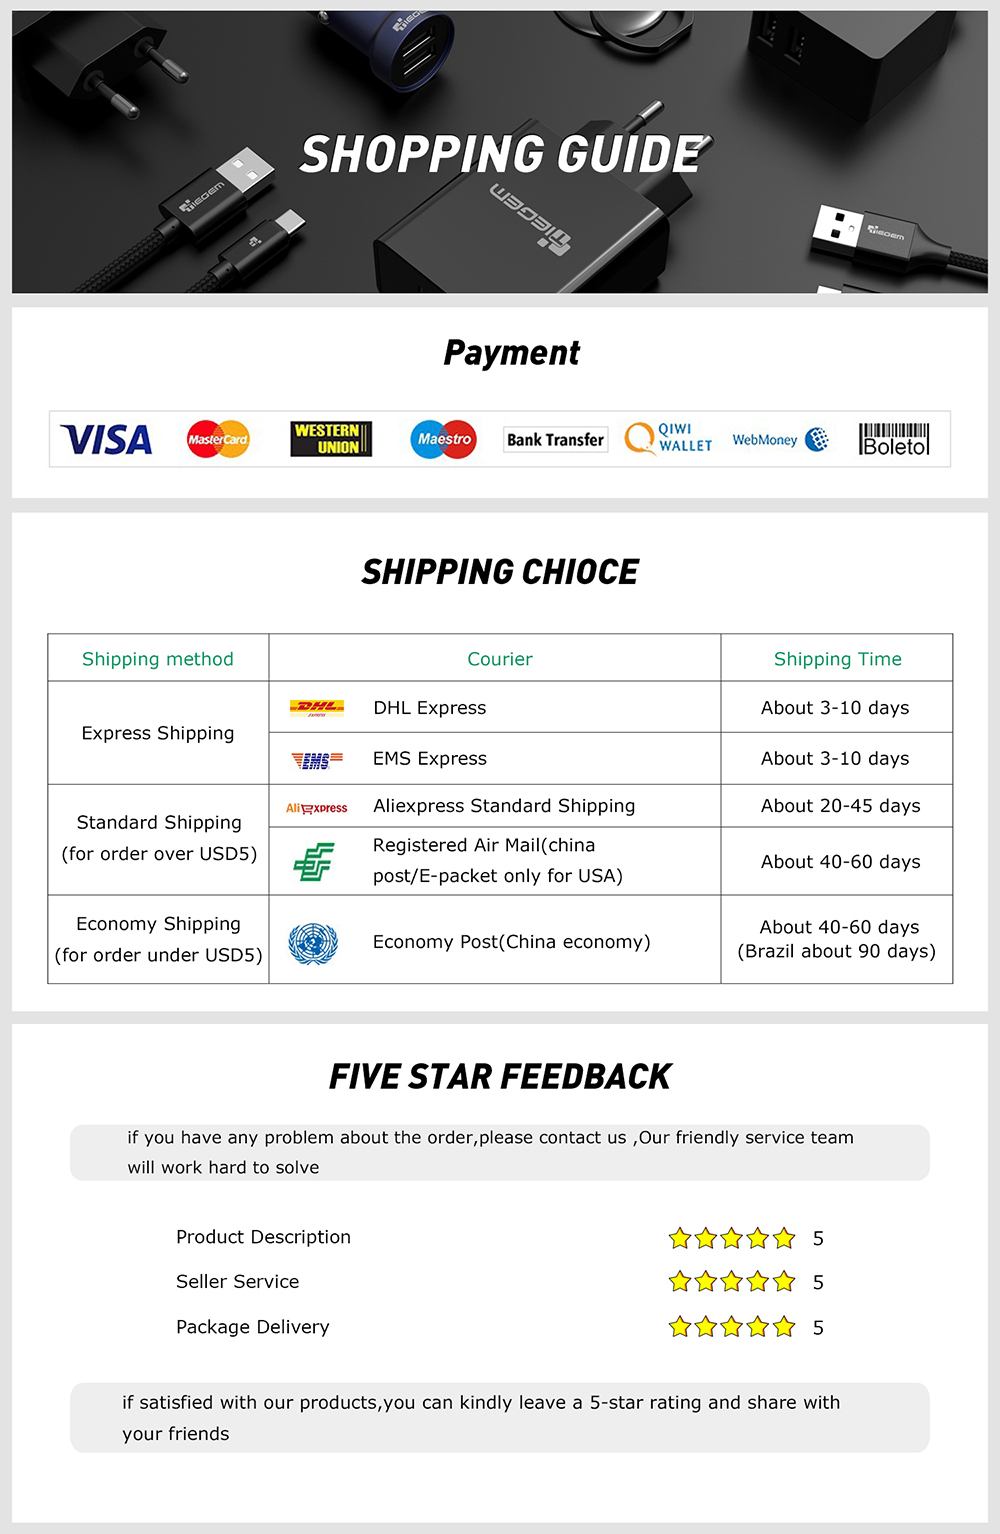 TIEGEM Micro USB Cable 2.5A Nylon Fast Charge USB Data Cable for Samsung Xiaomi LG Tablet Android Mobile Phone USB Charging Cord